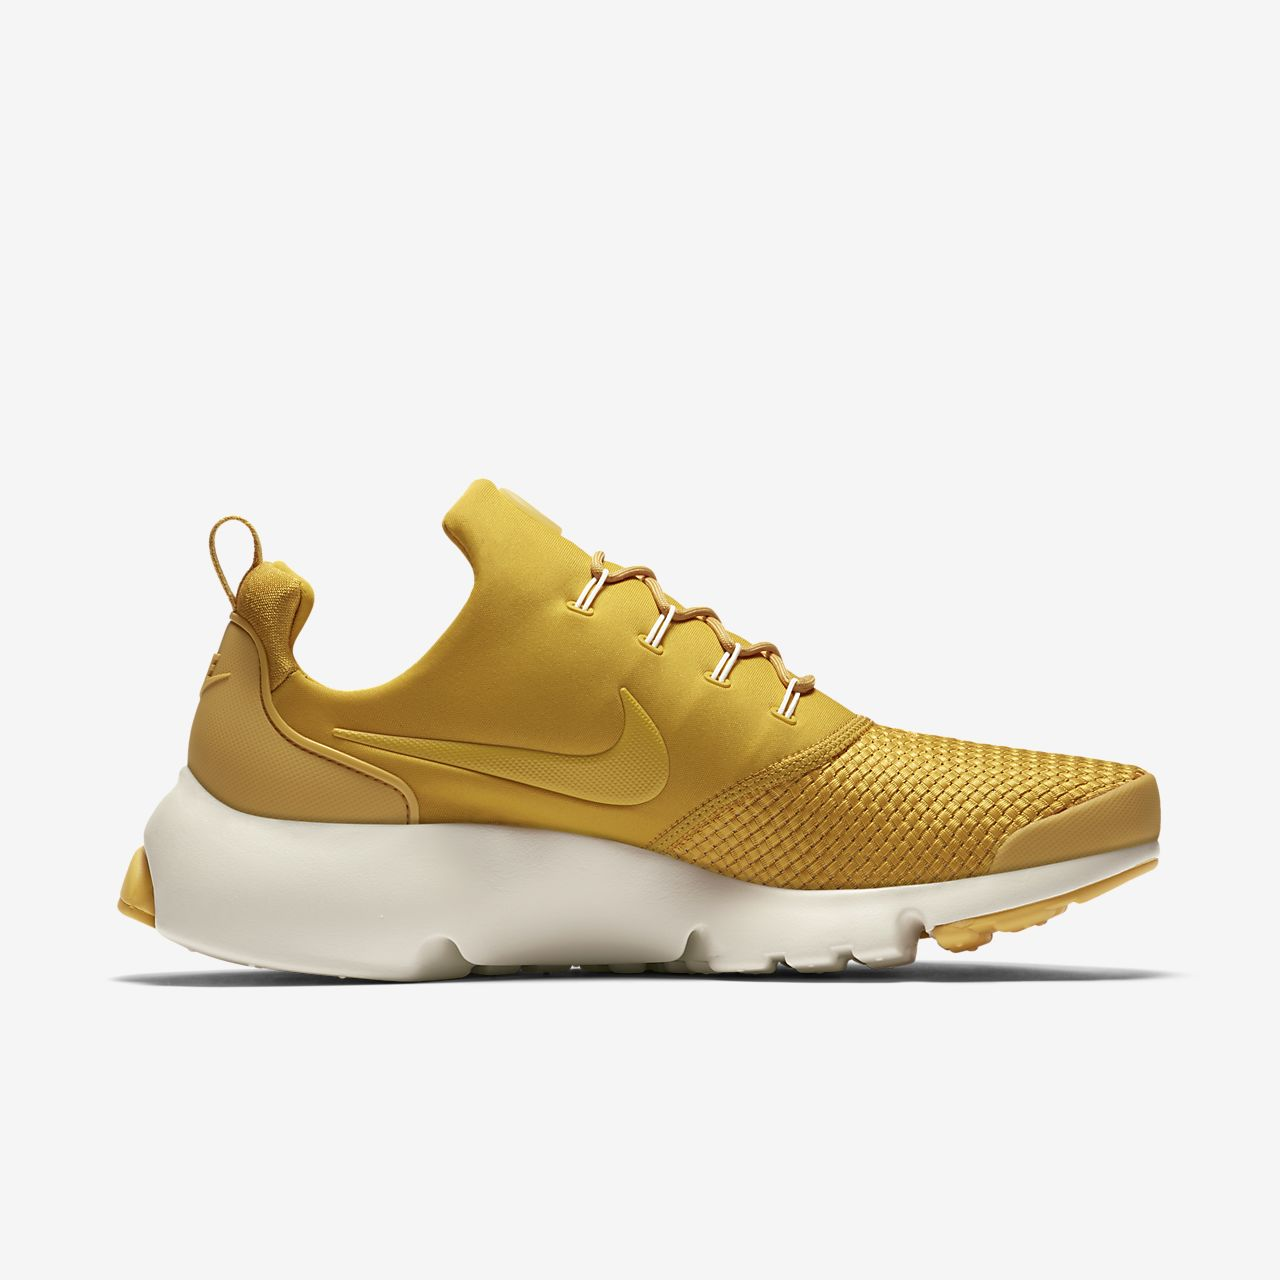 2018 Venta Online Nike Presto Fly SE Light Pumice/ Light Pumice Costo O2tvT8